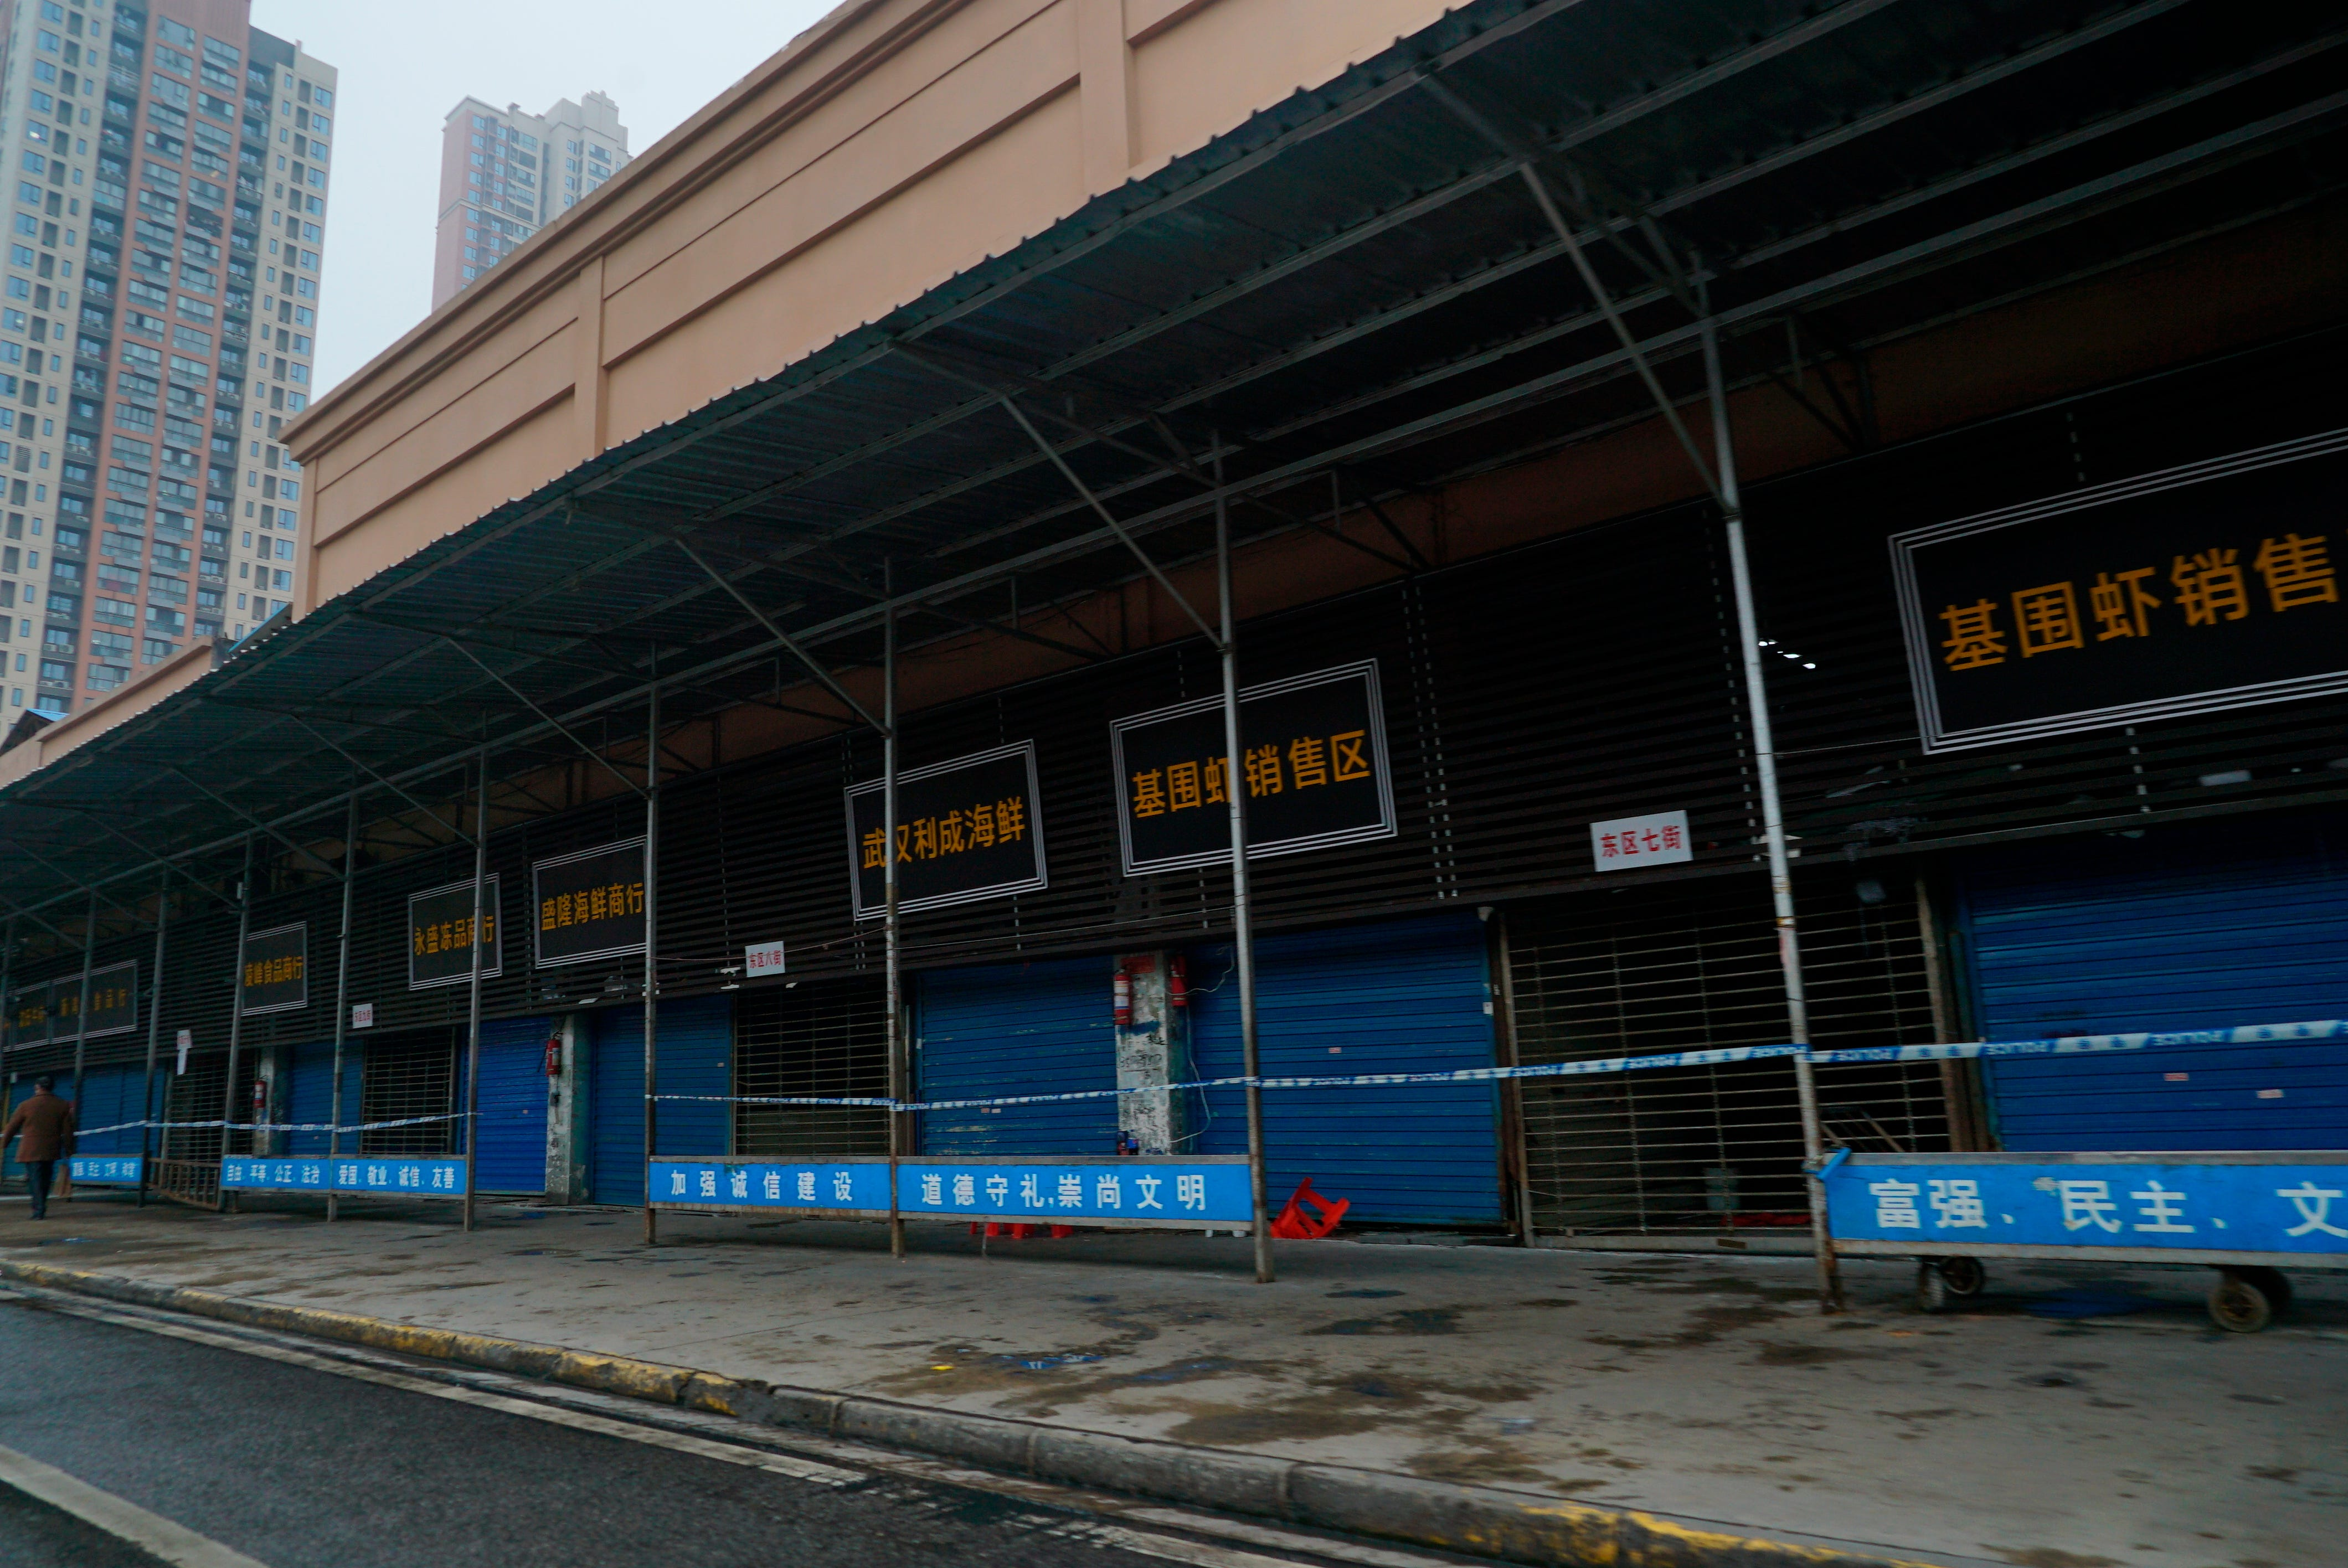 The Wuhan Huanan Wholesale Seafood Market, where people got infected with a virus, was closed in January 2020.